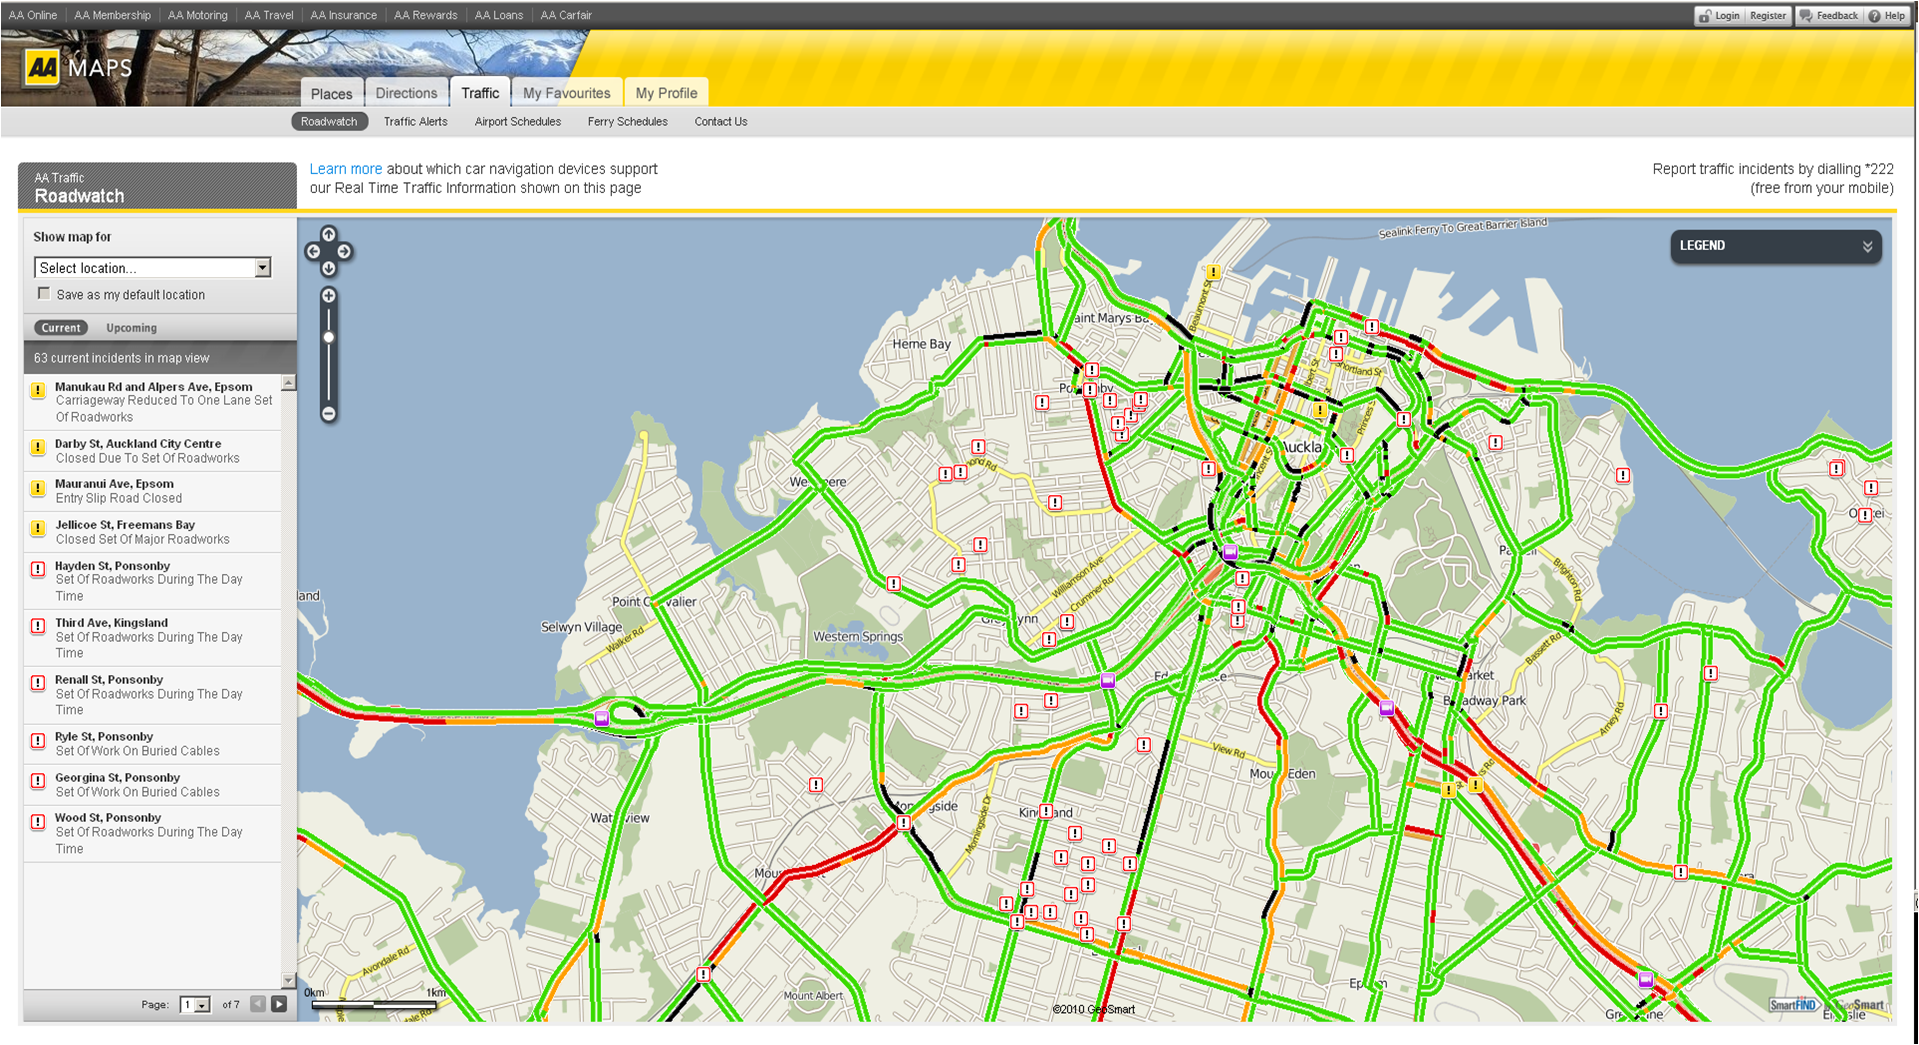 Geosmart Adds Live Traffic Flow Data To Aa Maps And Roadwatch Online